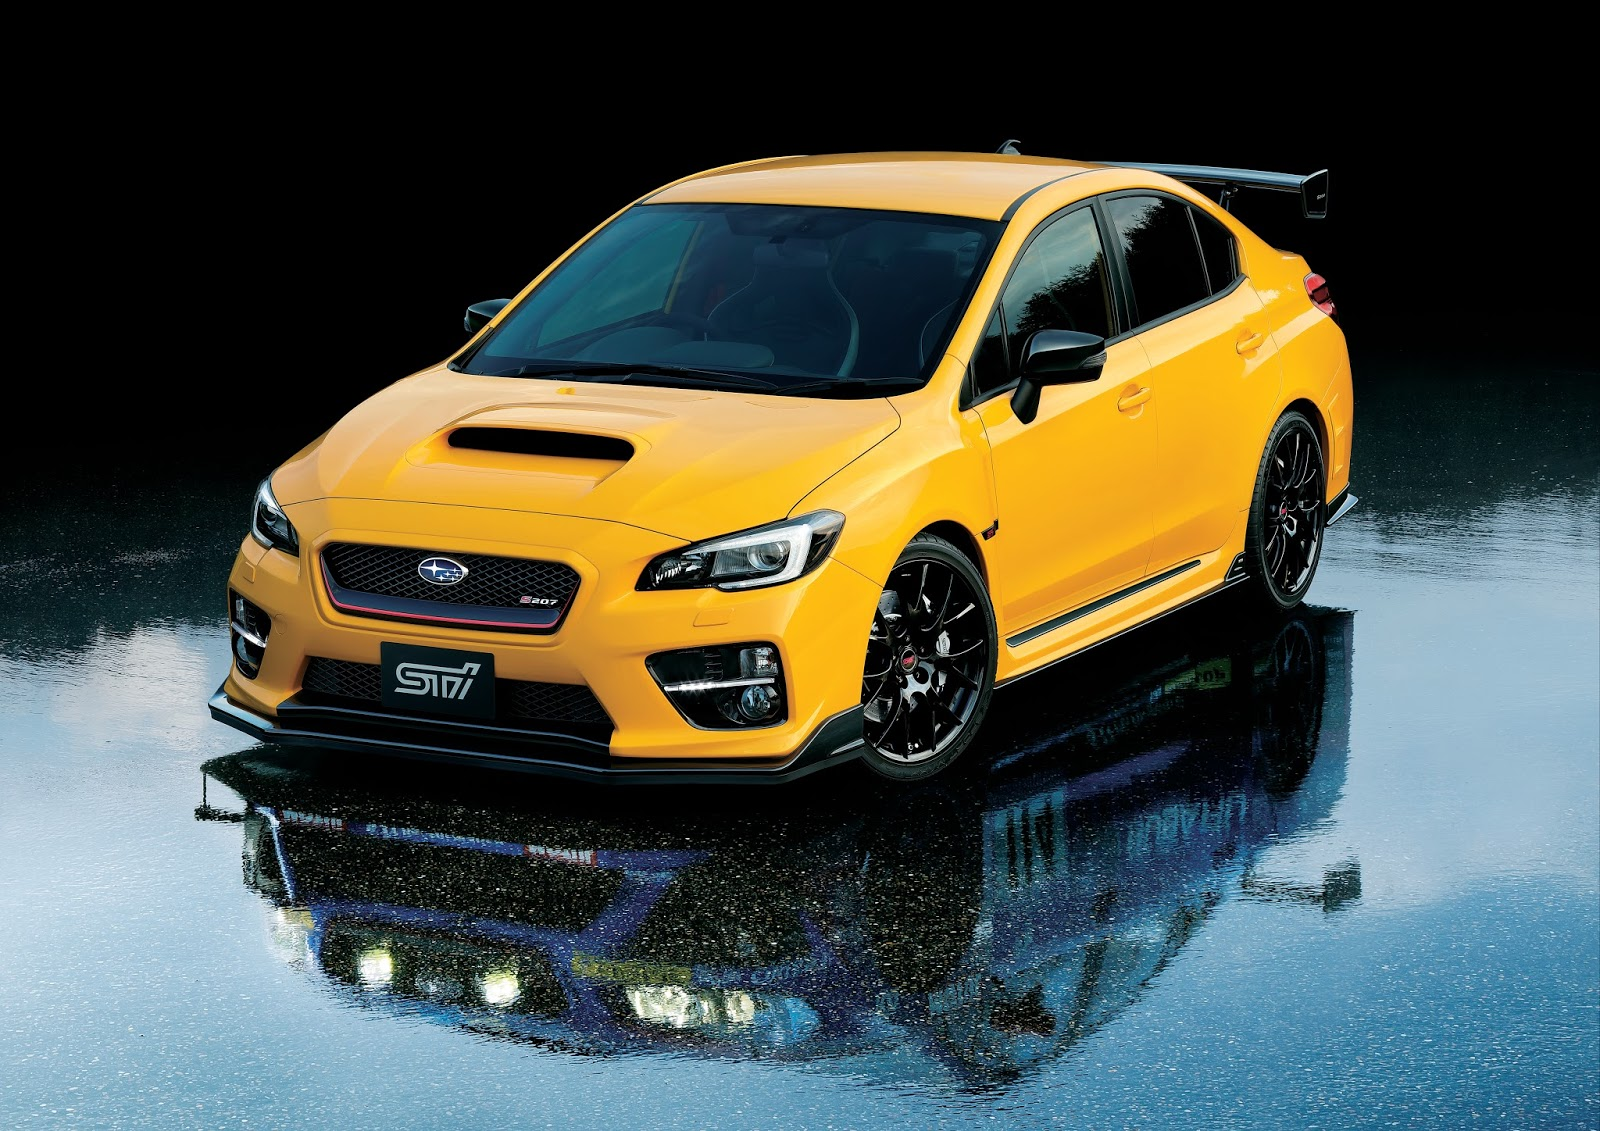 subaru turns the wick on wrx sti with 328ps s207 limited edition carscoops. Black Bedroom Furniture Sets. Home Design Ideas